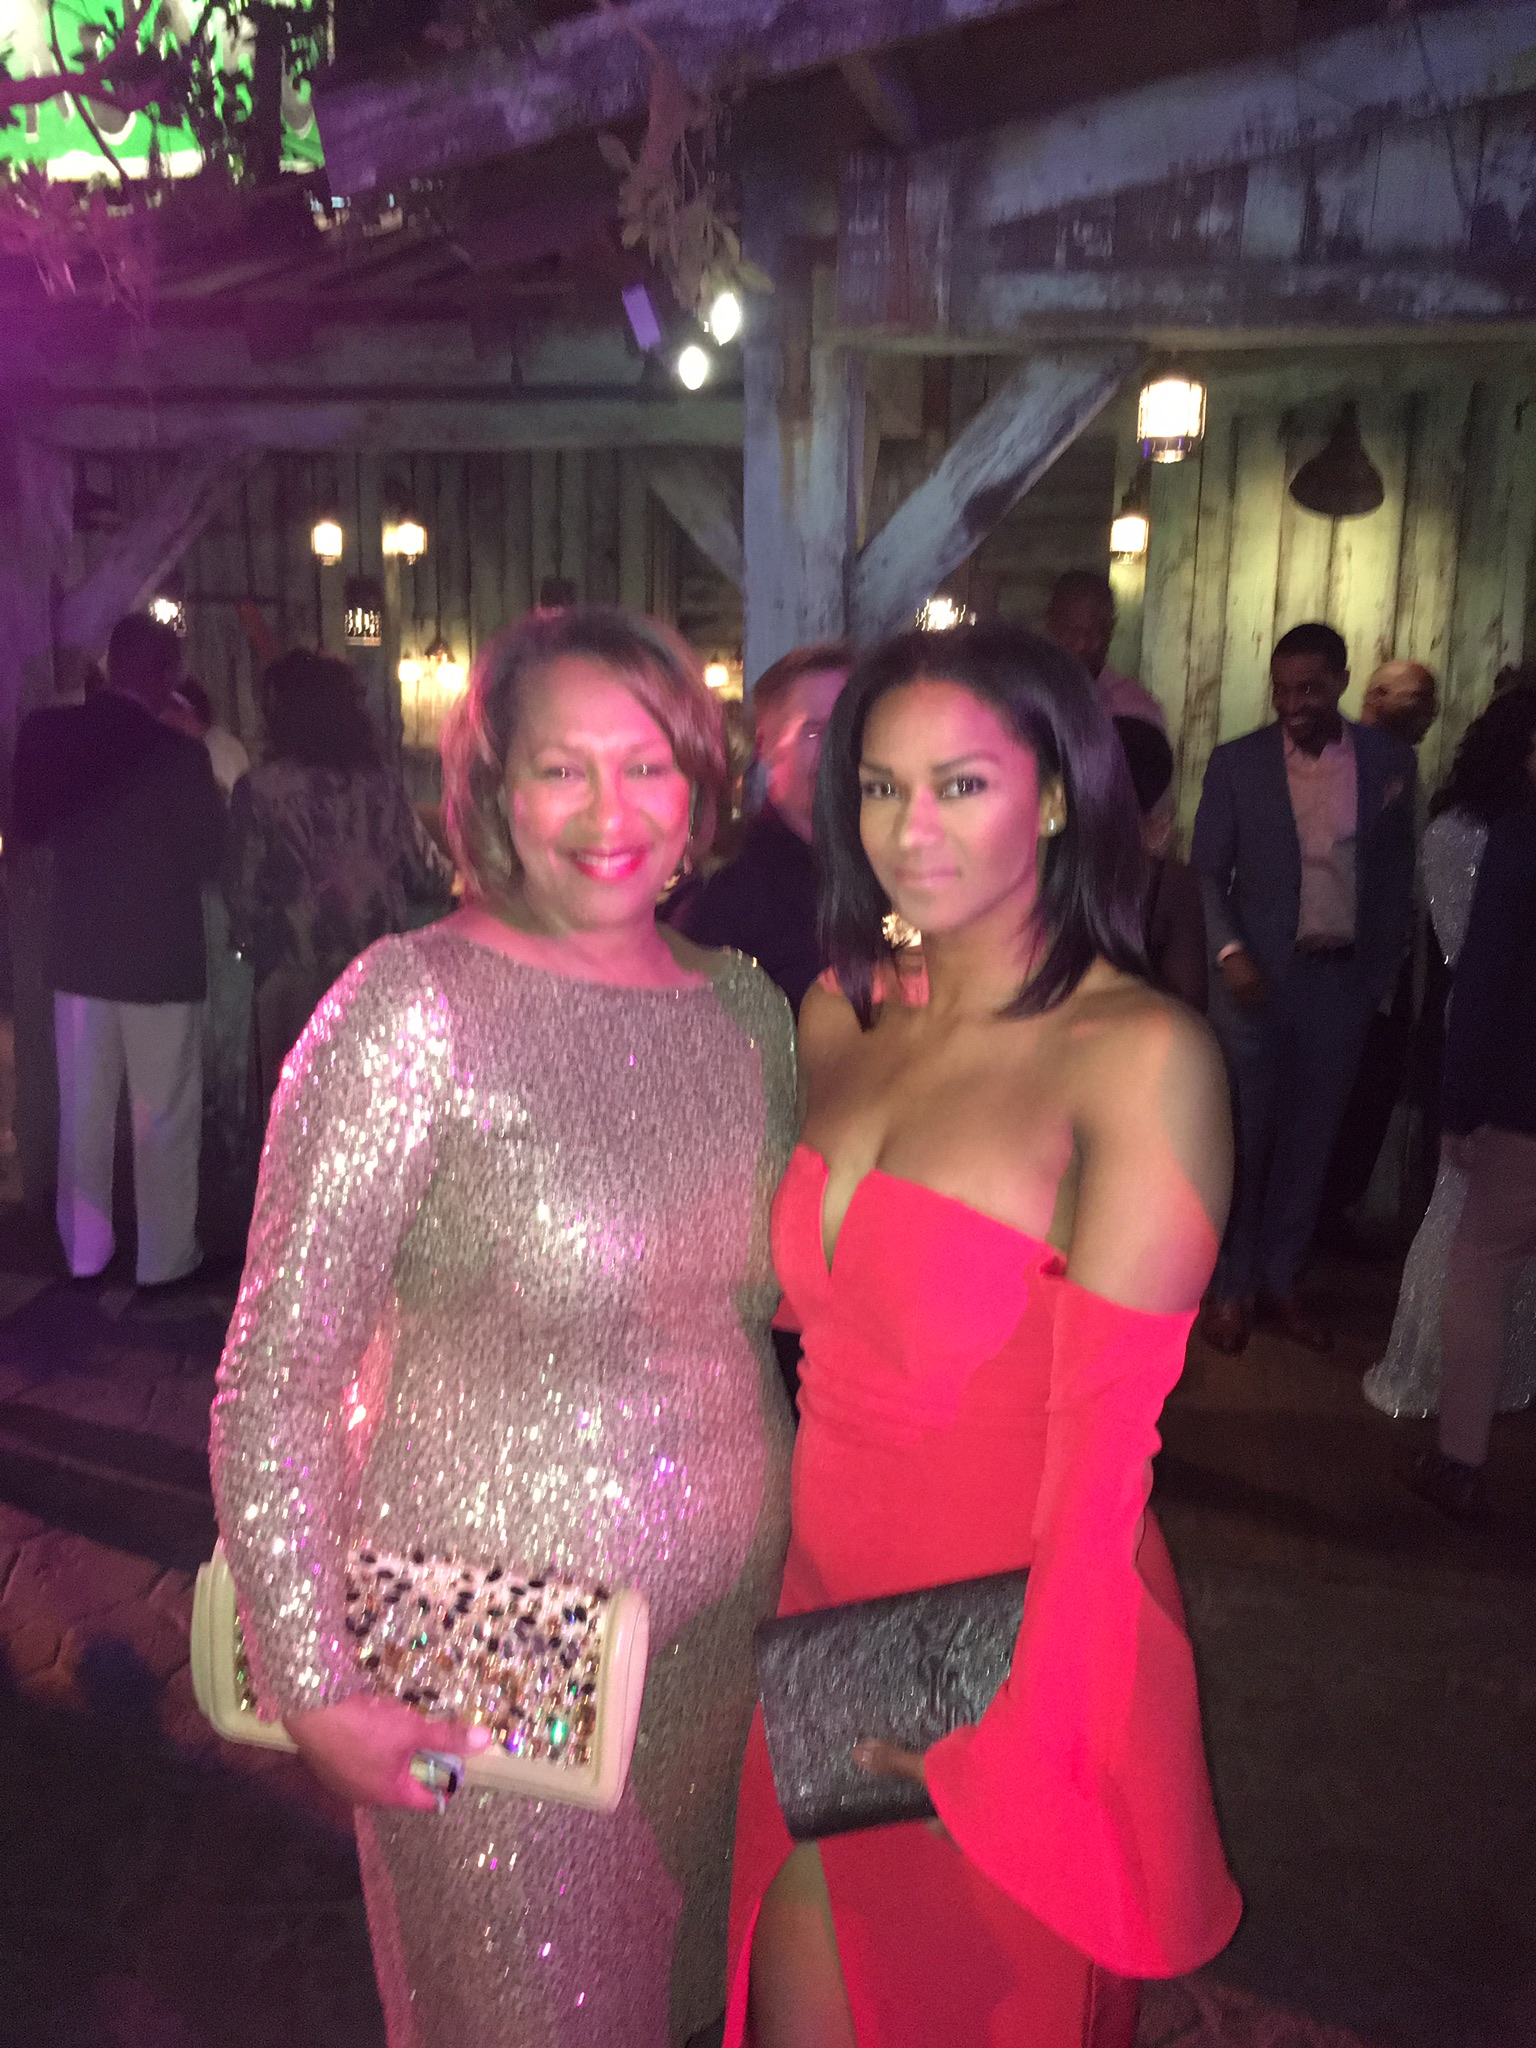 """""""My mom is spicy, savvy, stylish, and sweet. She's a bonafide boss lady, a go-getter and go-giver! I get all those cool traits from her. Thanks, Mama Louisiana! (That's where we are from and she LOVES Beyoncé as much as me—they even have the same bday).""""  Jalina Porter, DC Instructor"""